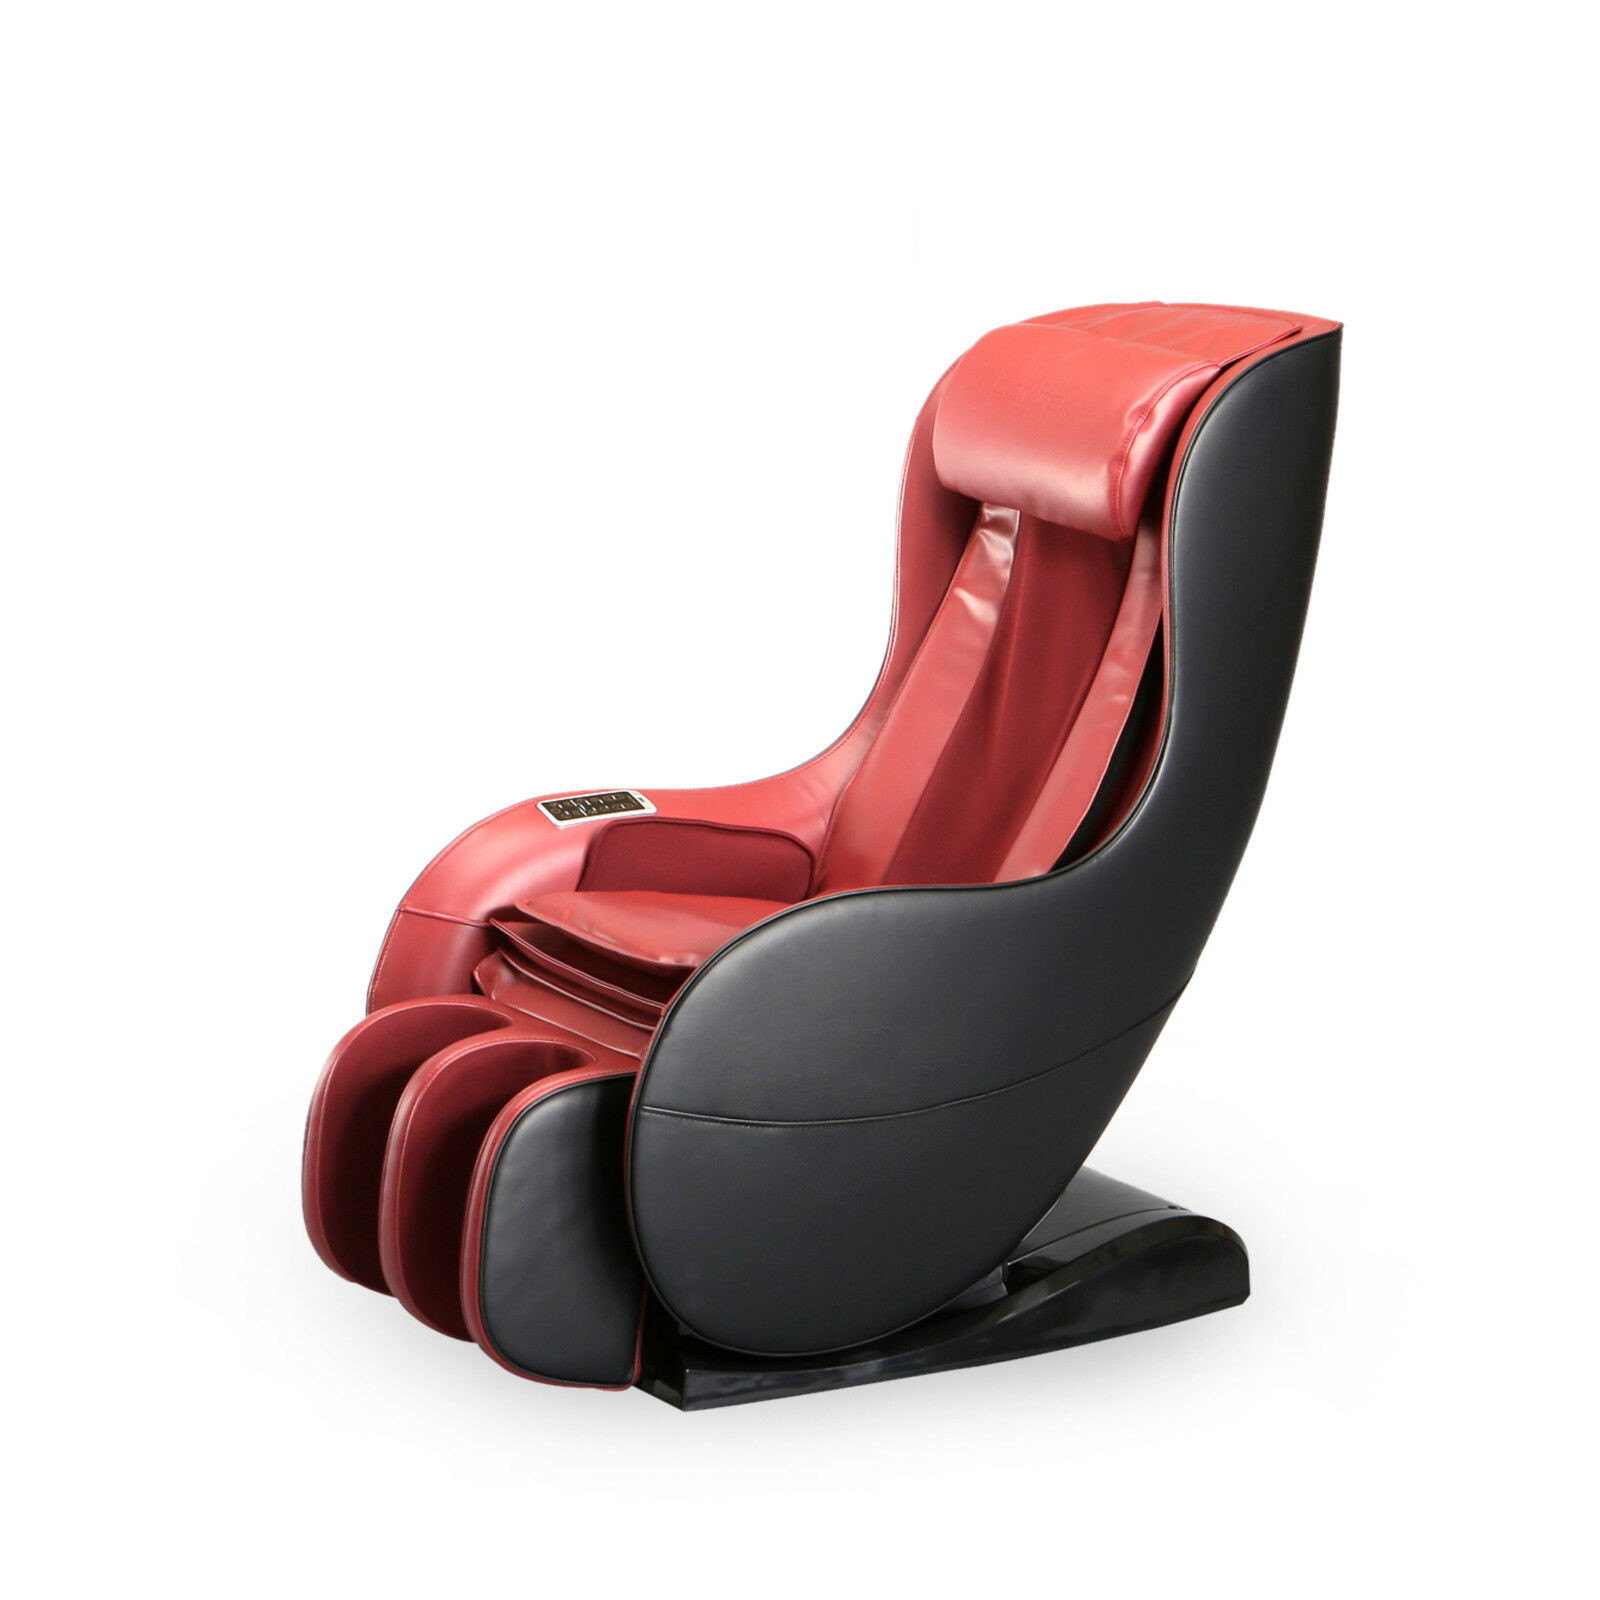 BestMassage Curved Video Gaming Massage Chair Stretched Foot Rest 1900 Electric Massage Chairs